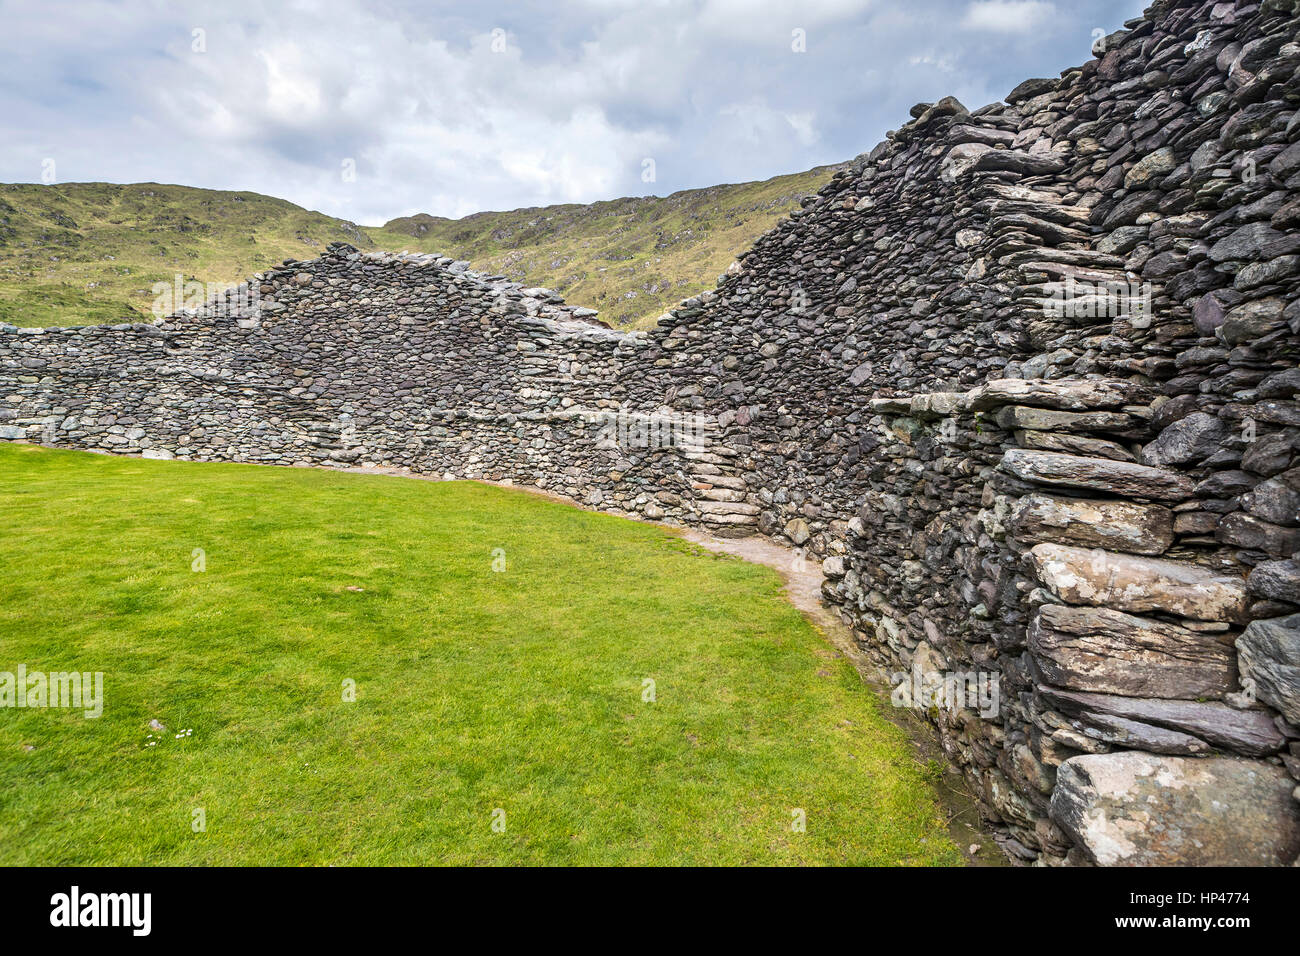 Staigue stone fort near Sneem, Iveragh peninsula, County Kerry, Ireland, Europe - Stock Image